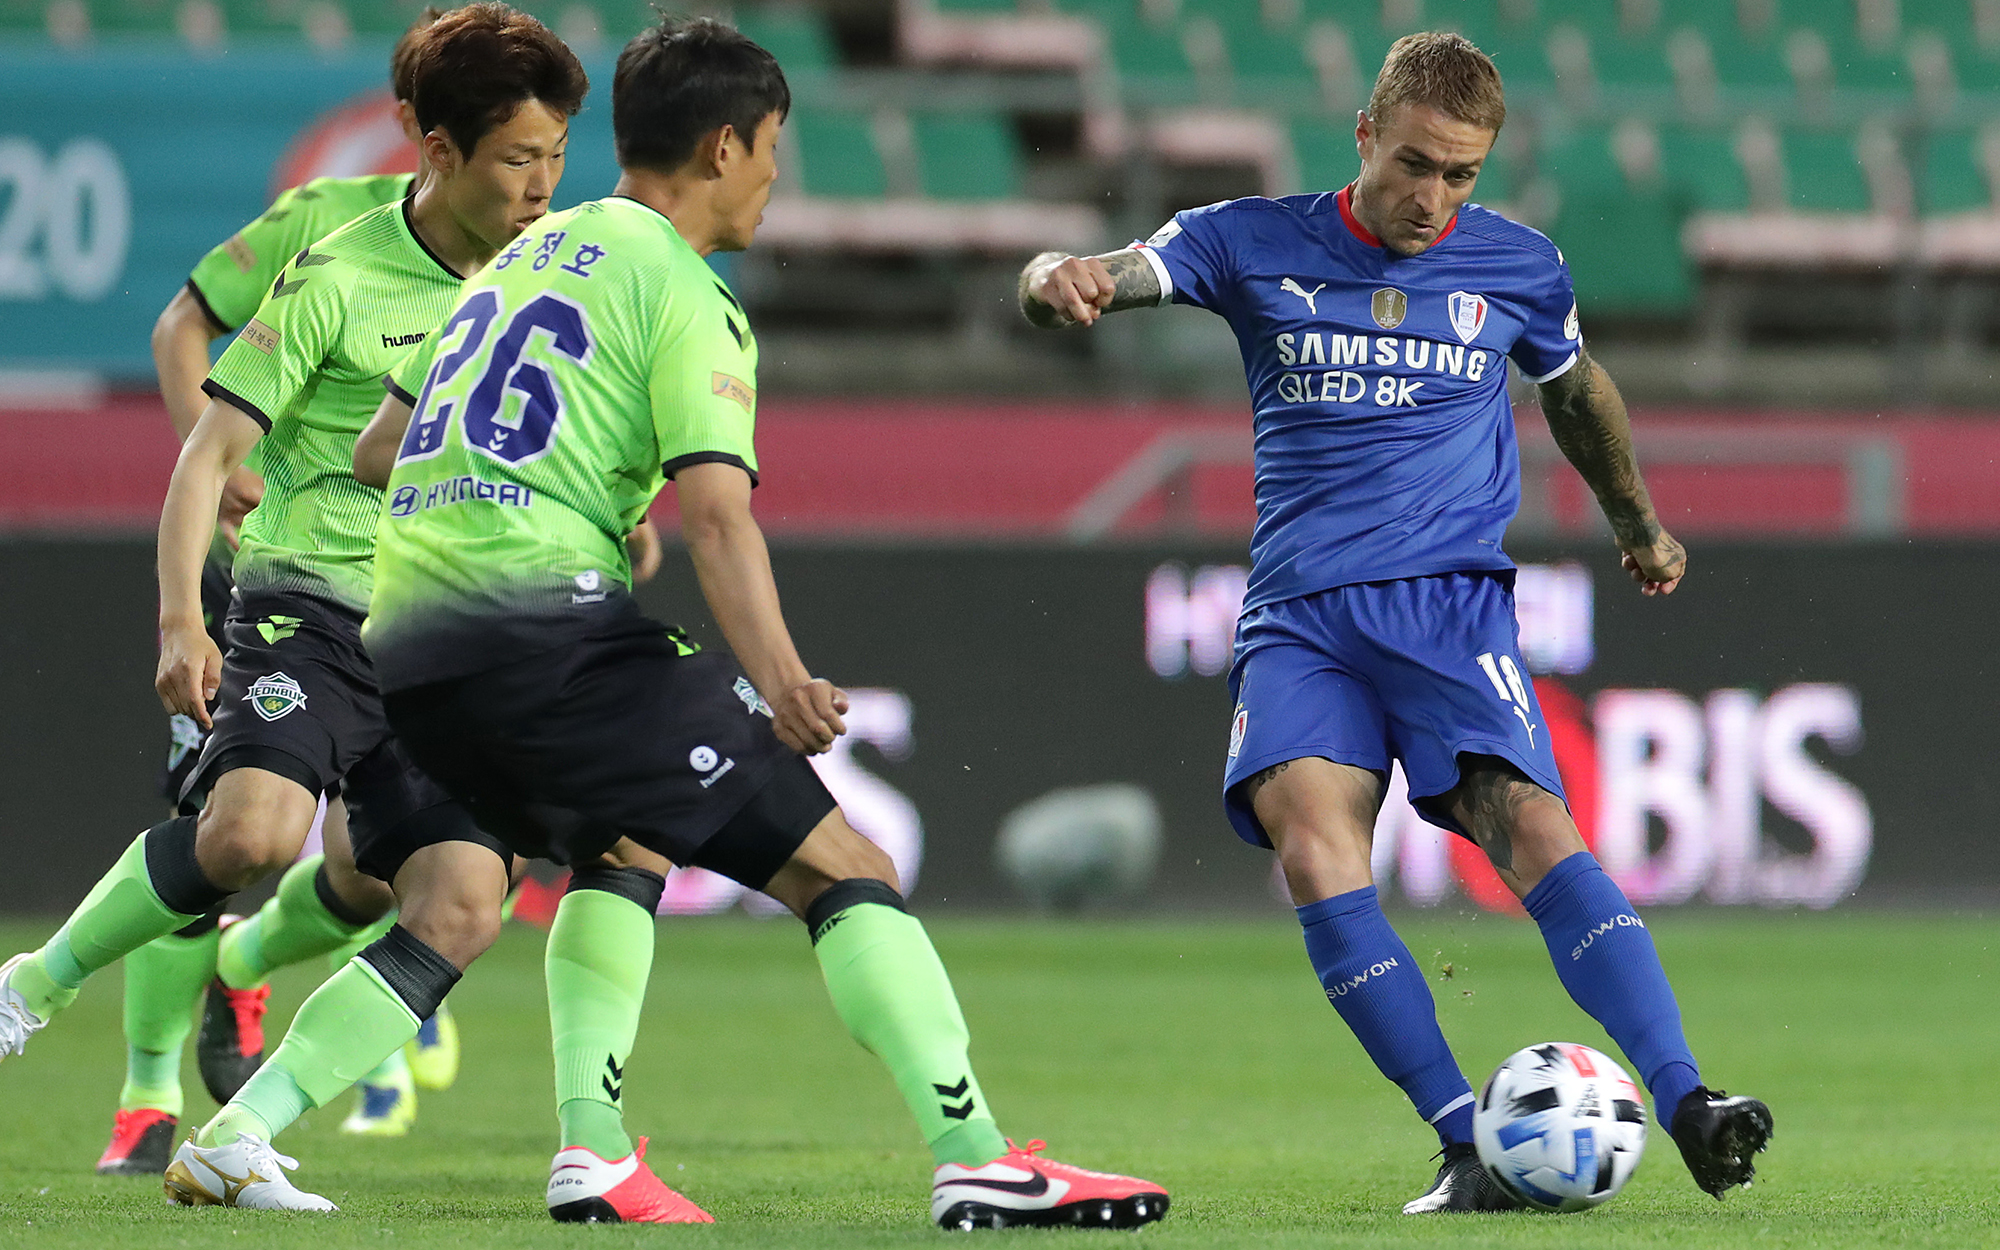 Aussies Abroad: Taggart secures first win of K League campaign